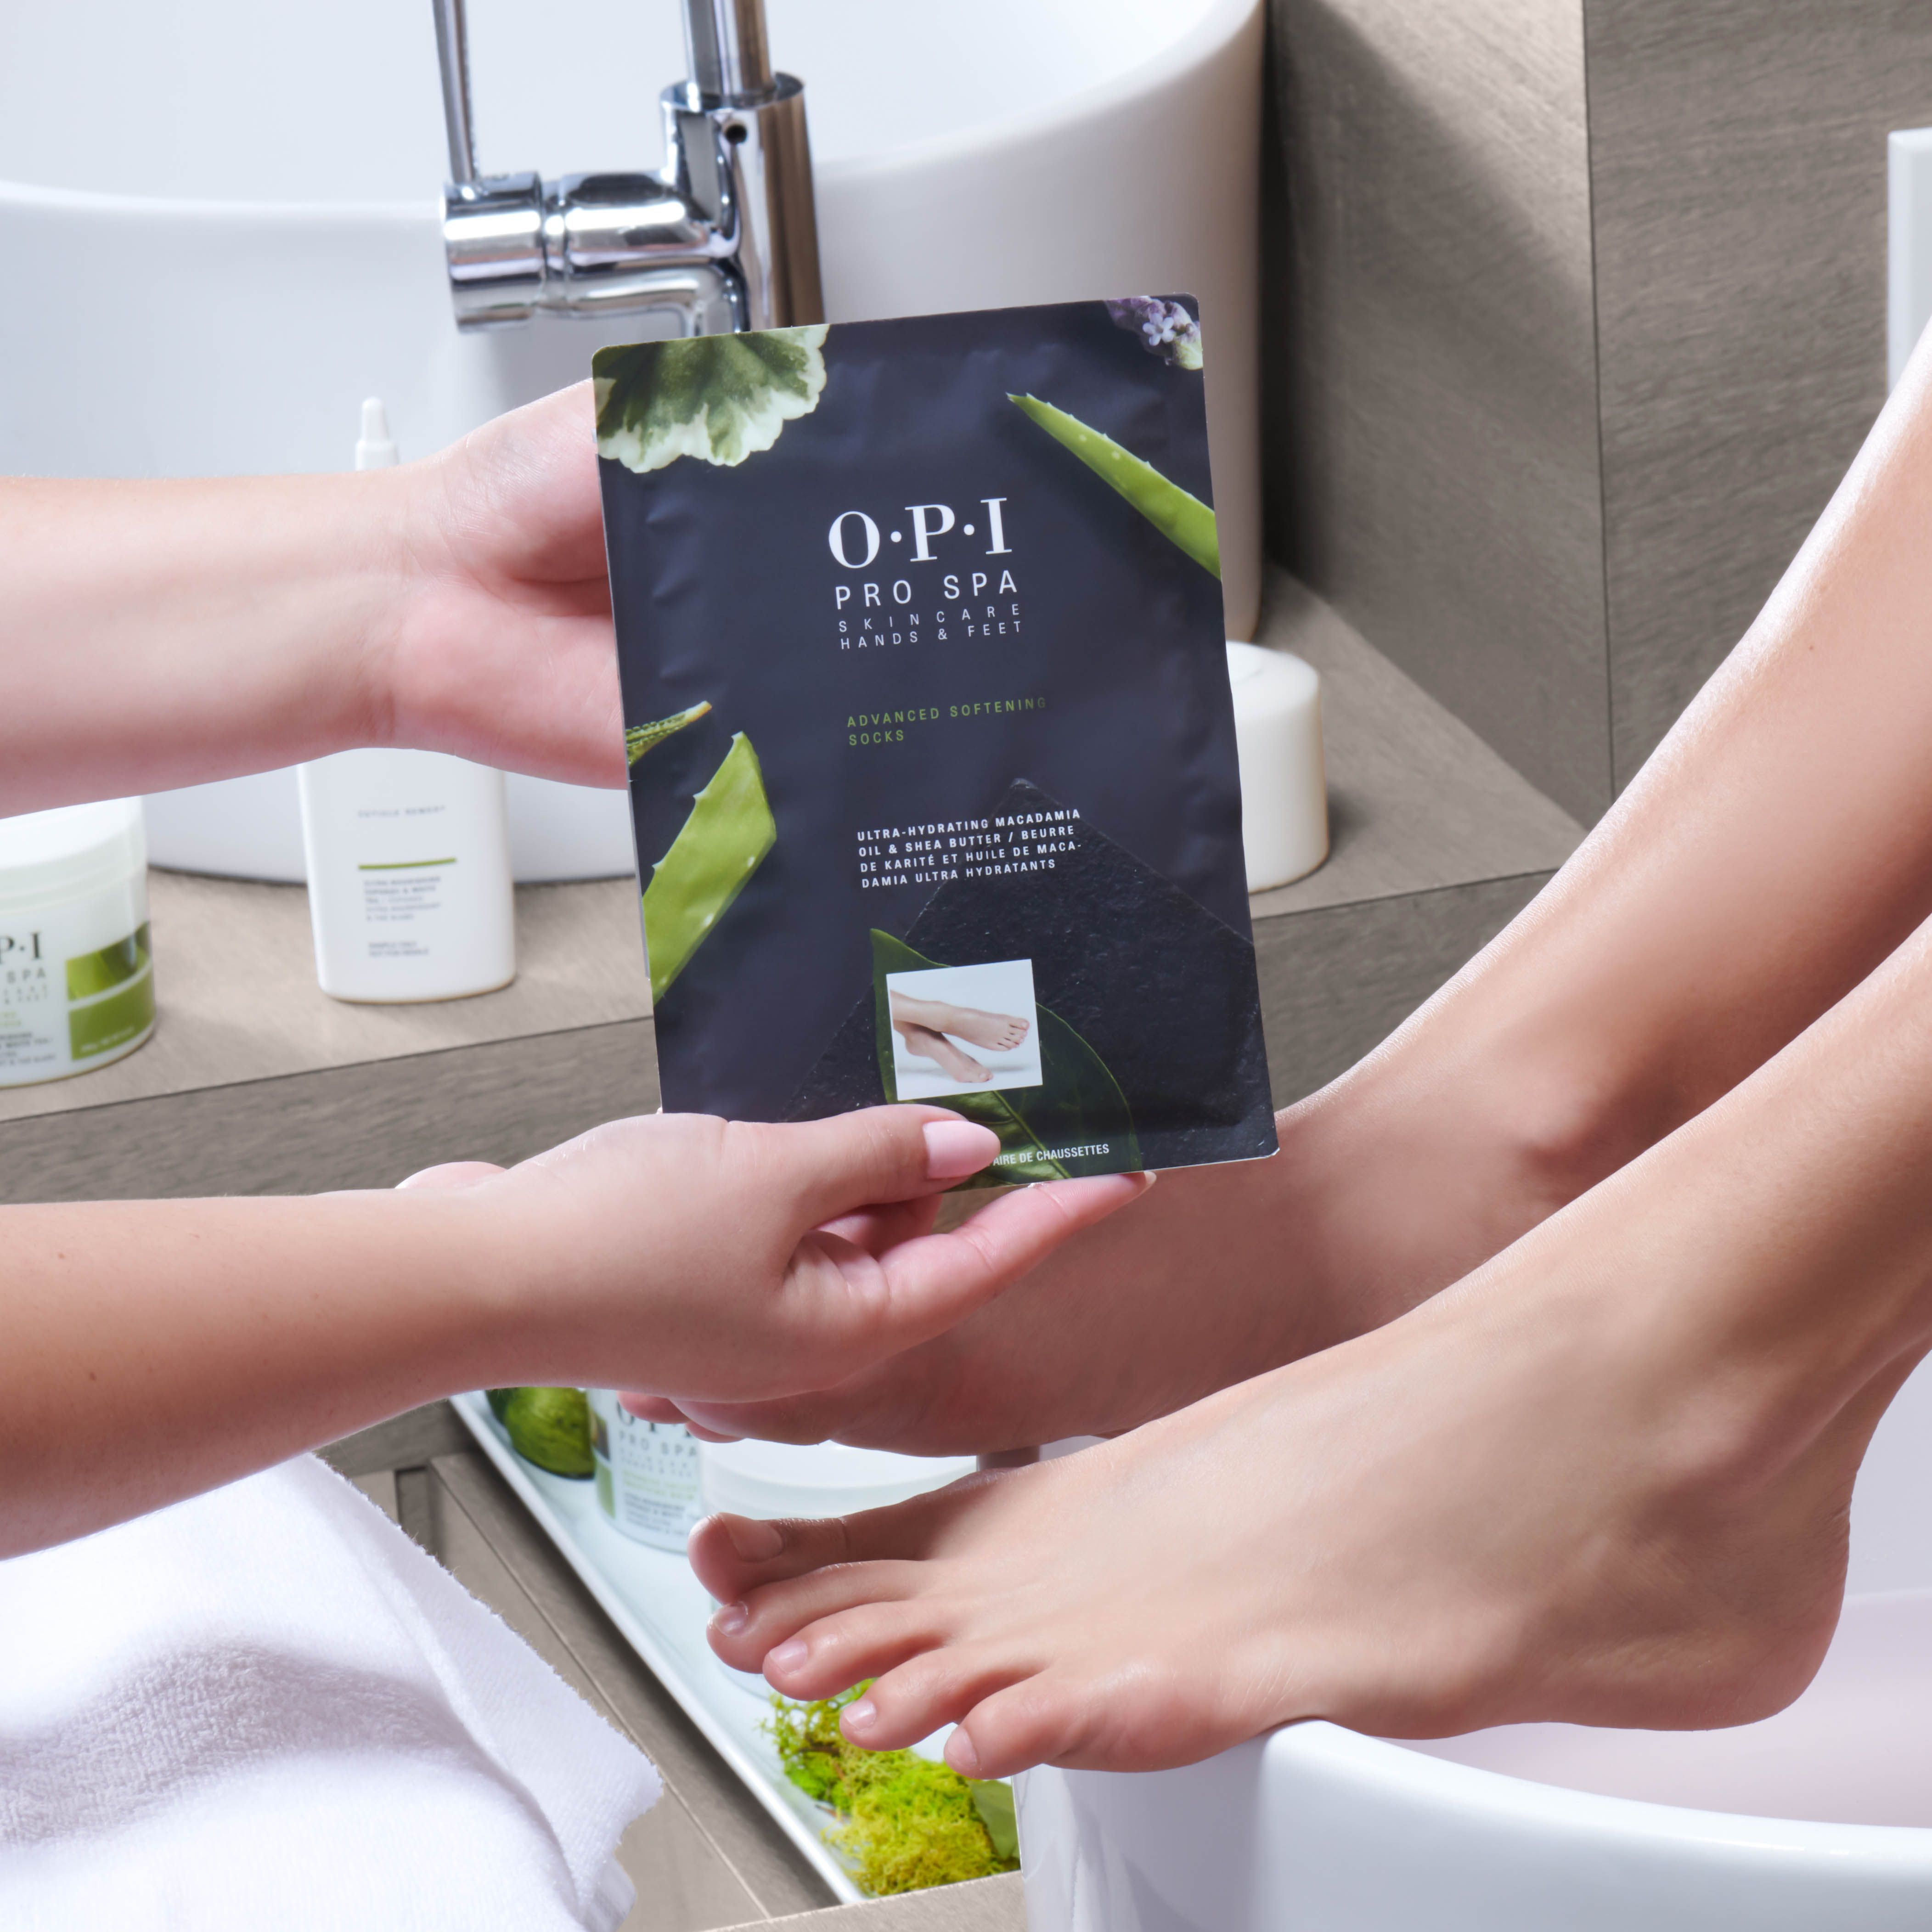 Opiprospa Advanced Soothing Socks Don T Get A Pedi Without Them Your New Soft Feet Will Love You Skin So Soft Spa Manicure Soften Skin